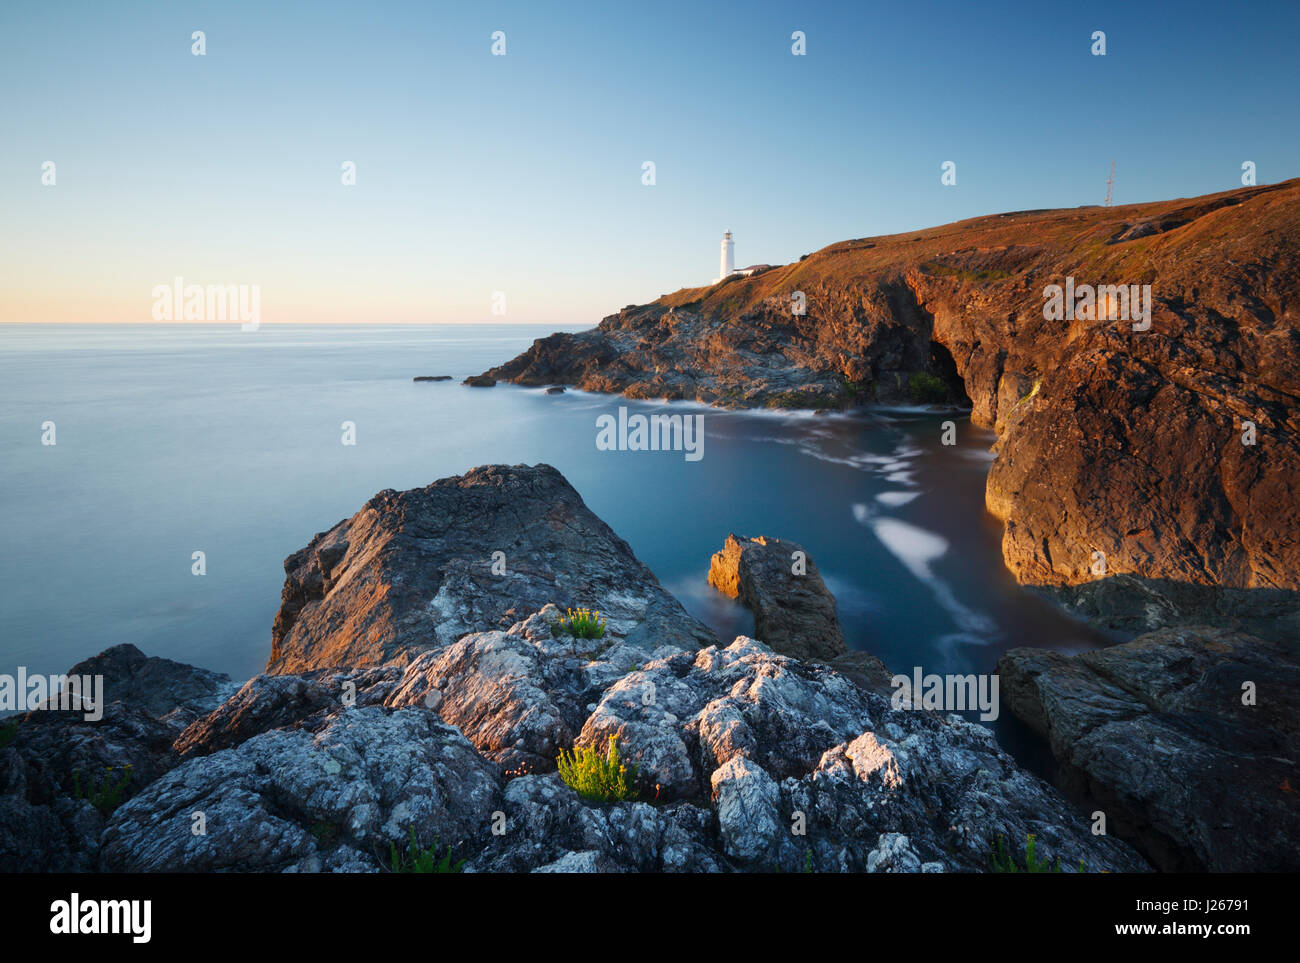 Trevose Head. Cornwall. UK. Photo Stock